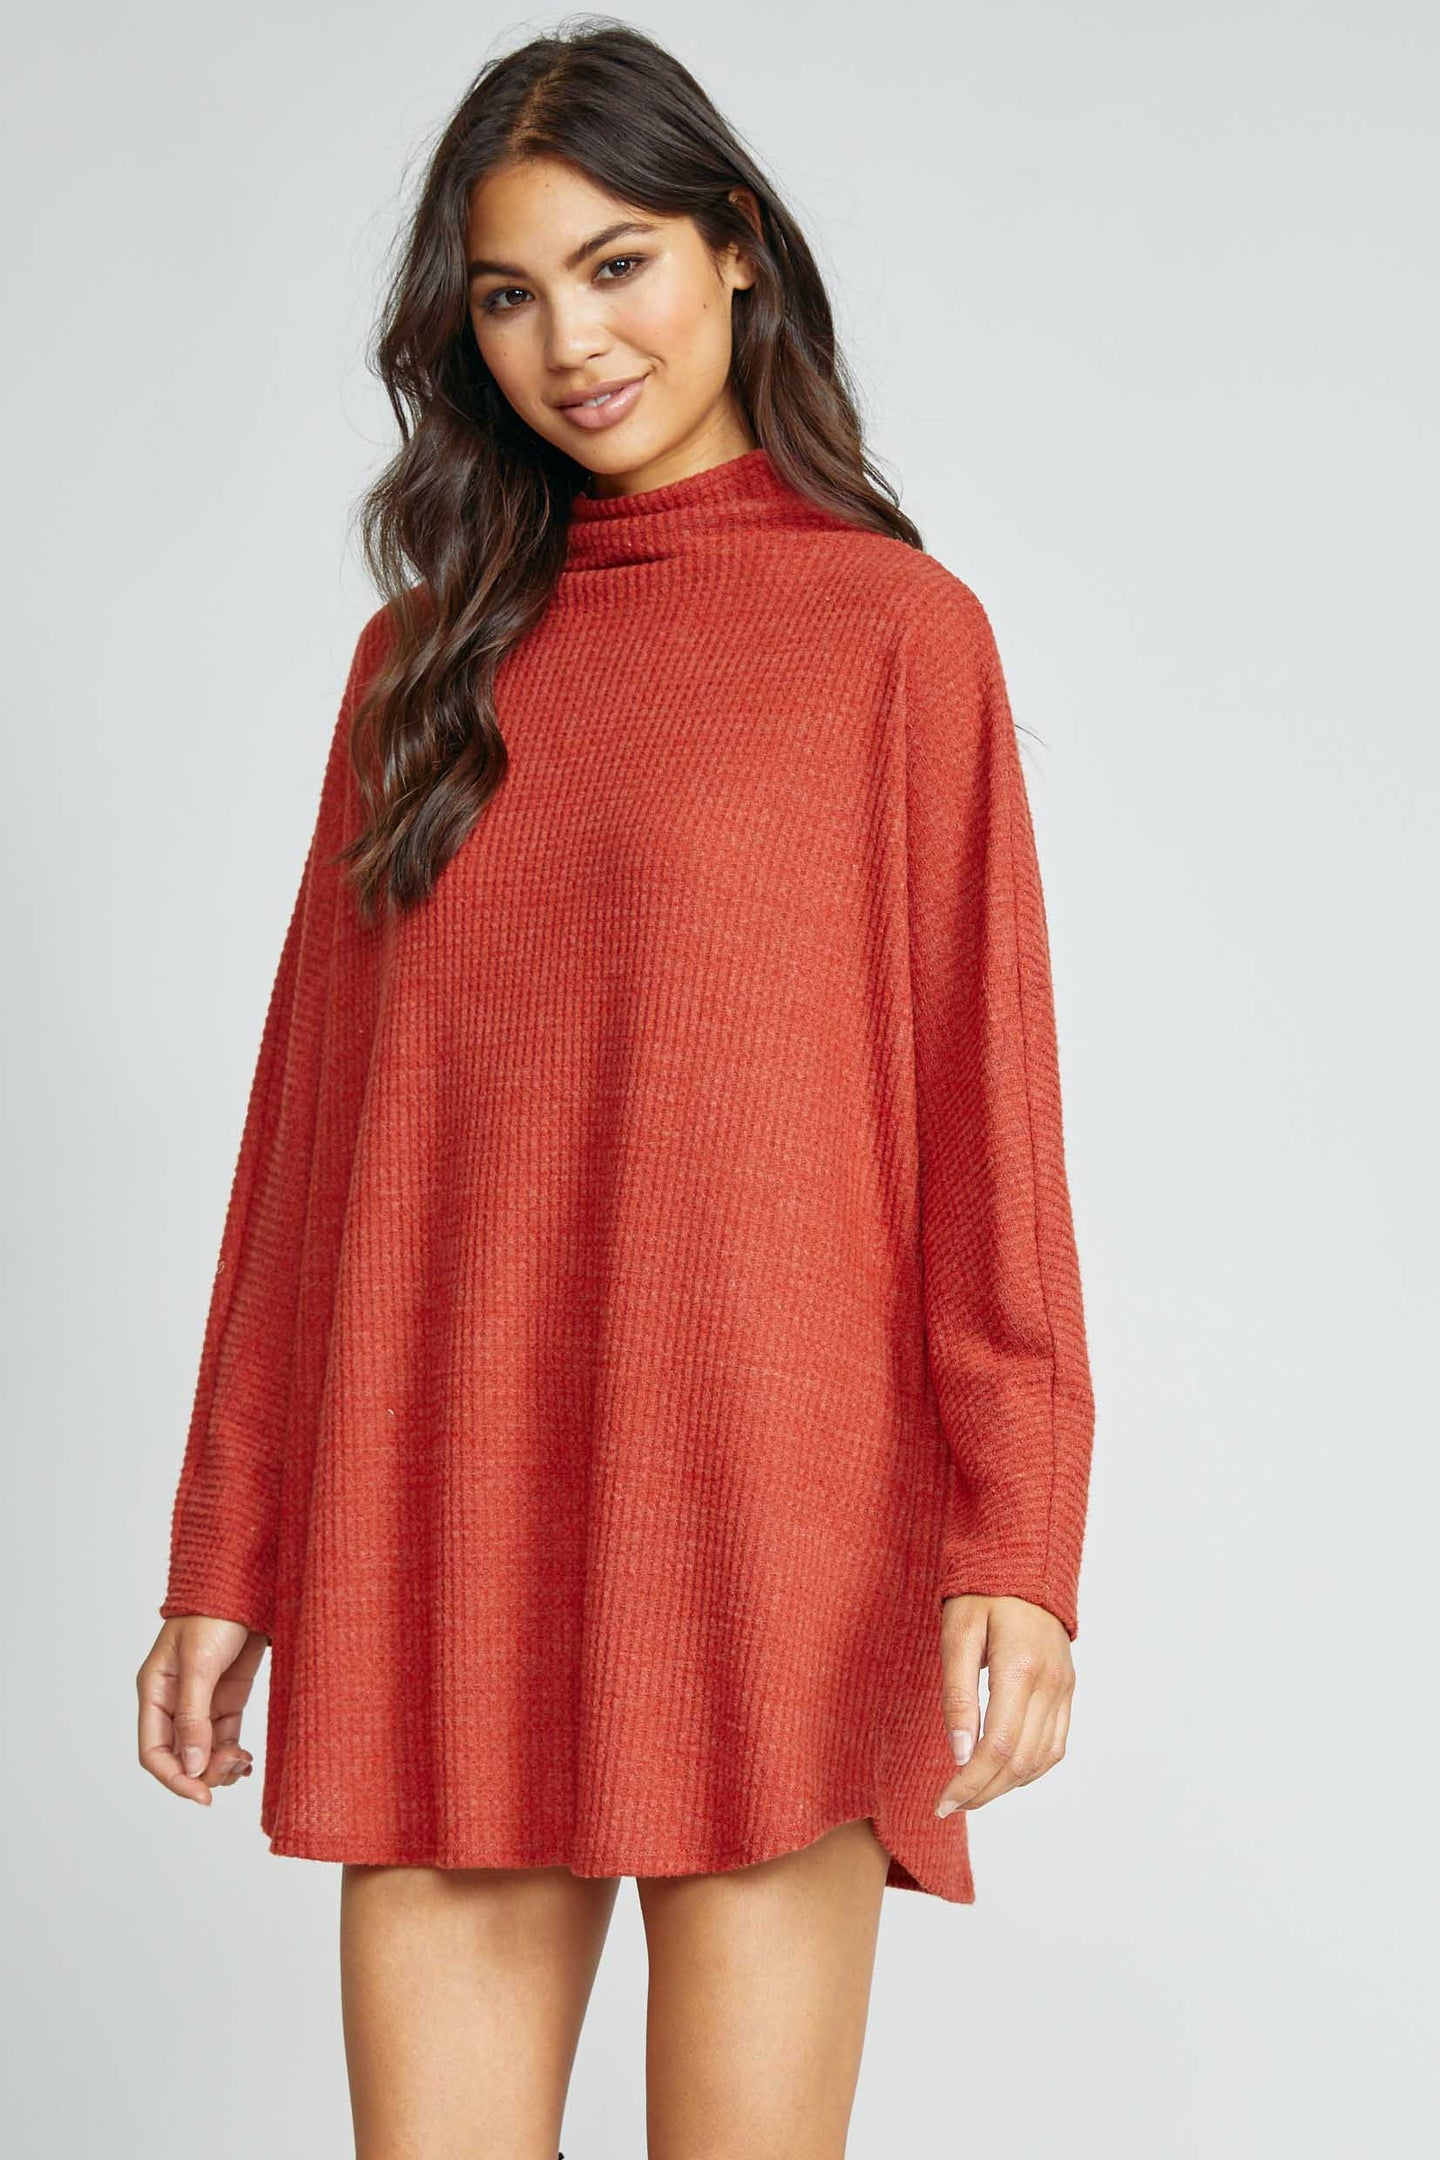 Homeward Waffle Knit Top